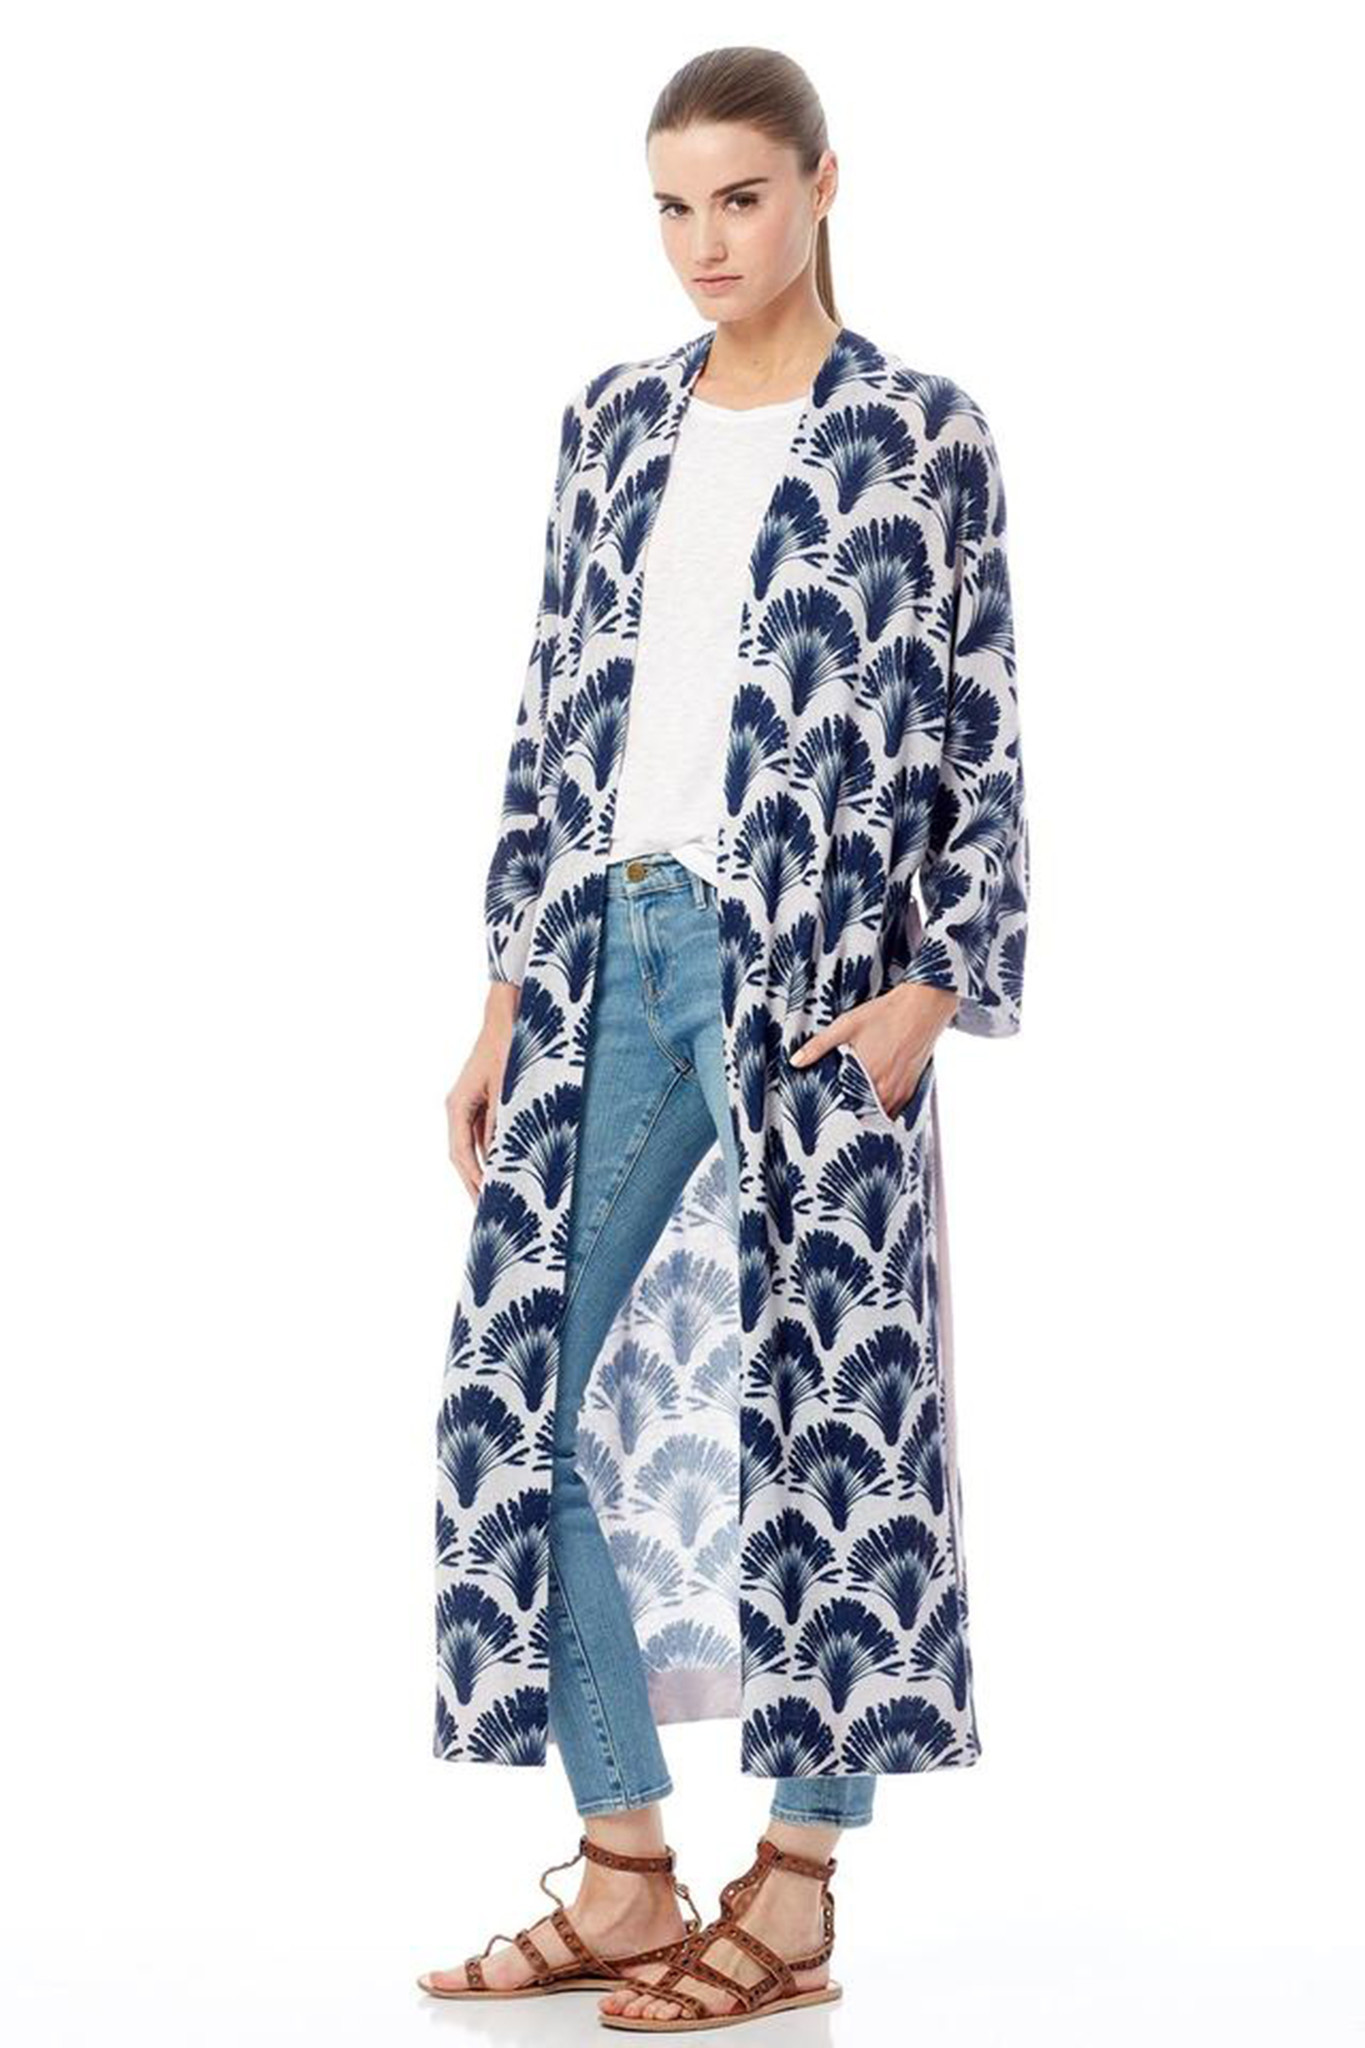 The Berlin, a lightweight cashmere robe with a palm frond print from 360Cashmere, is designed be worn over practically everything.